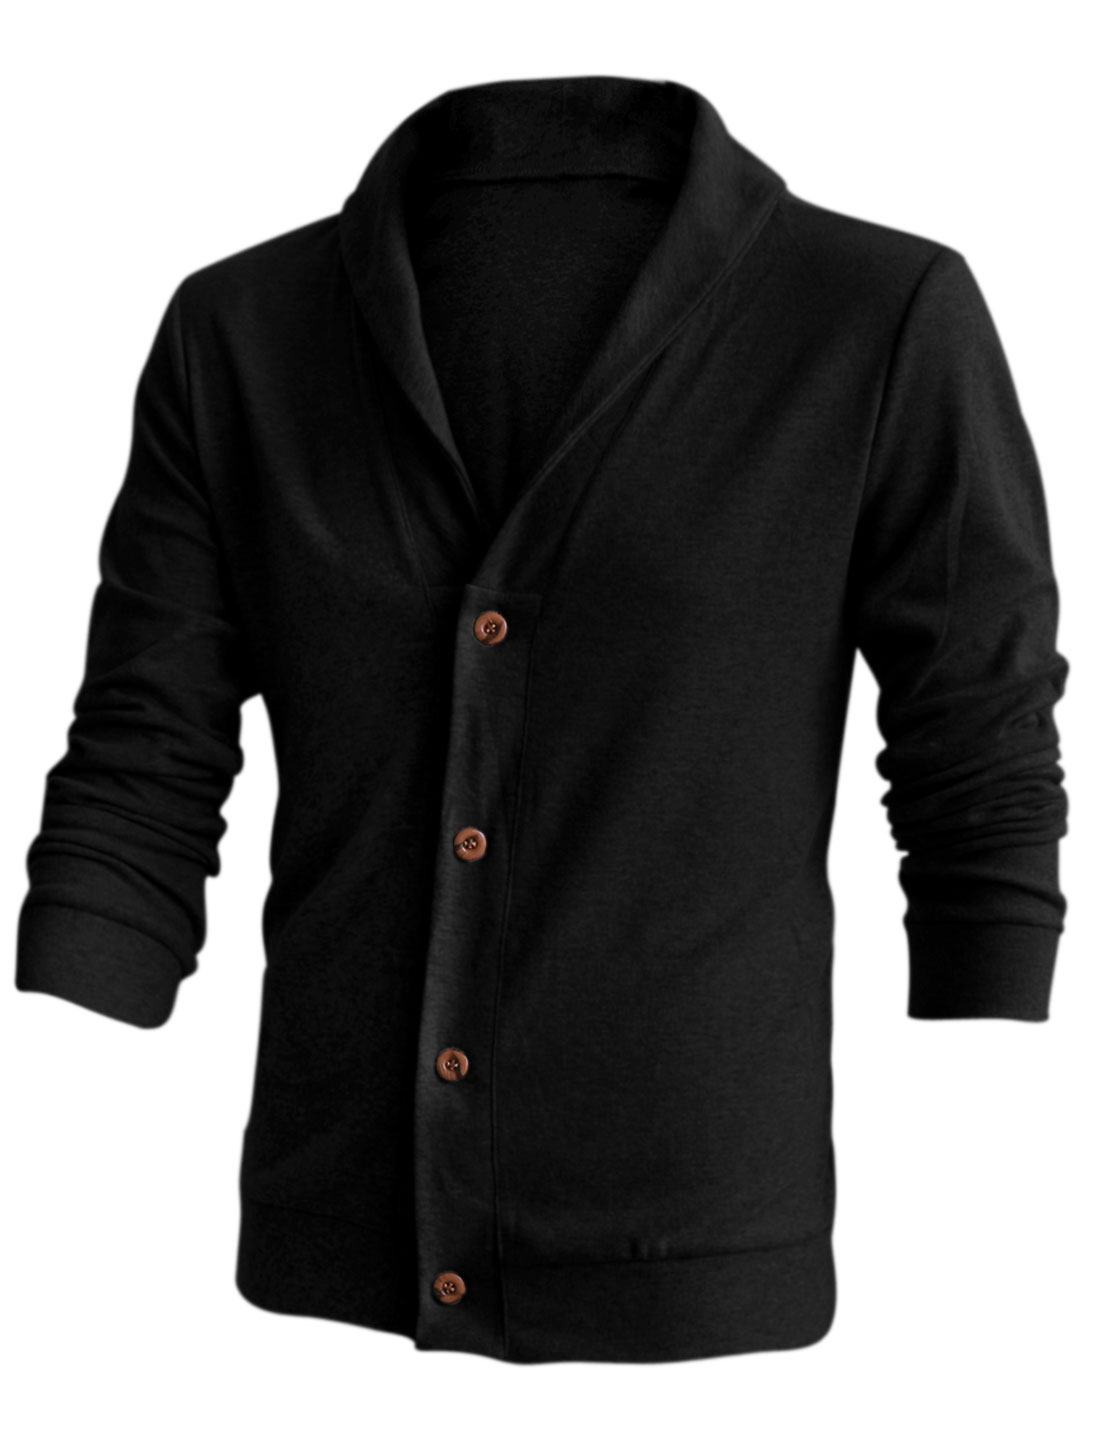 New Style Soft Single Breasted Casual Cardigan for Men Black